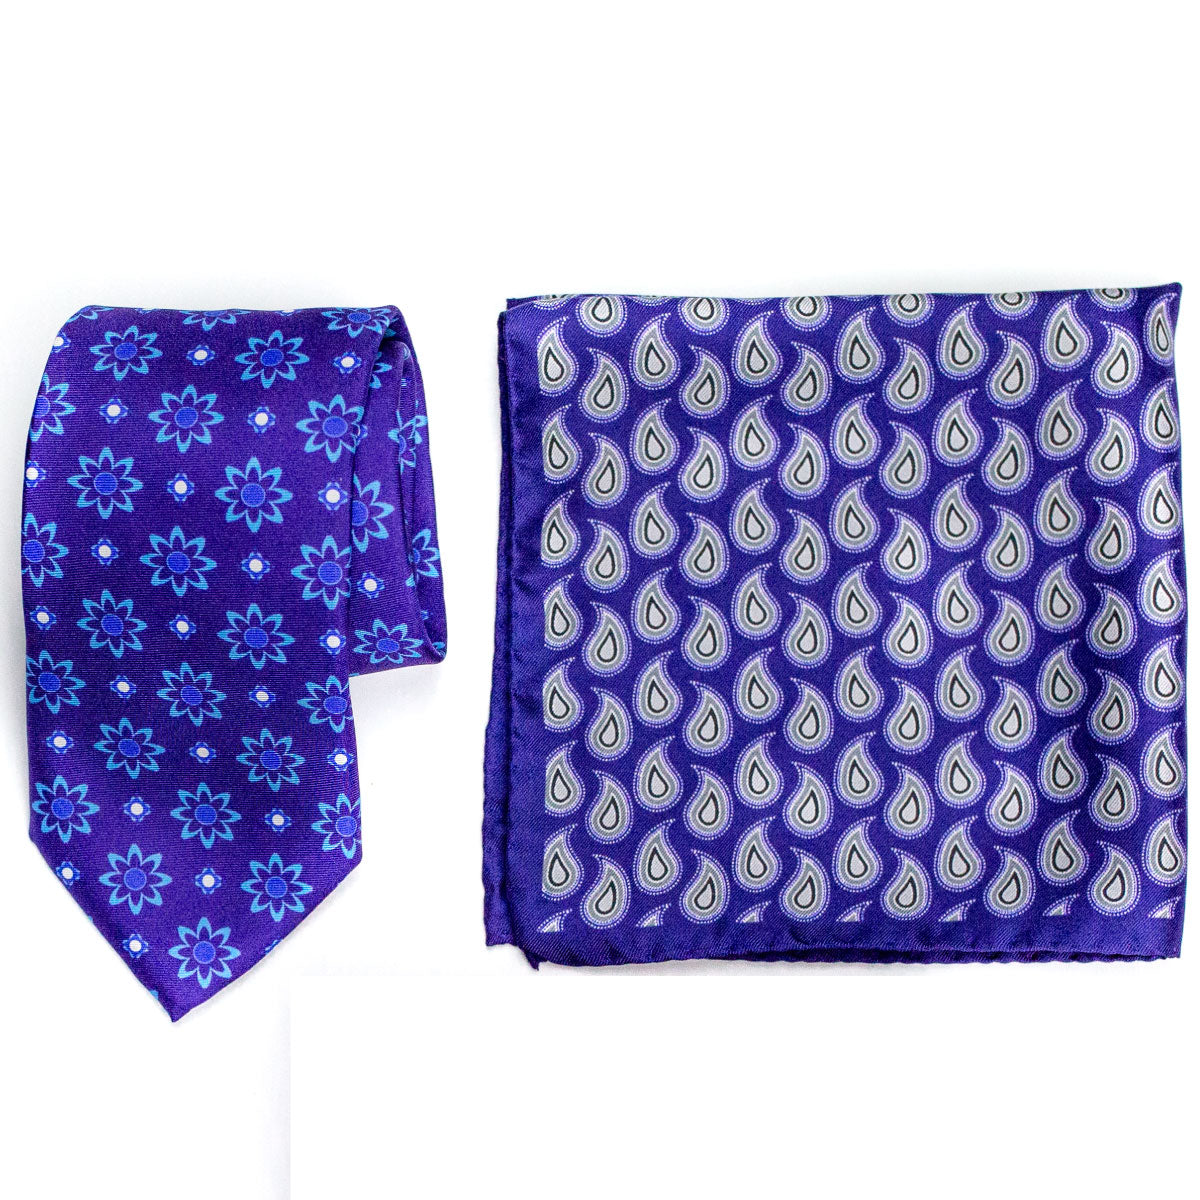 Matching tie and pocket square